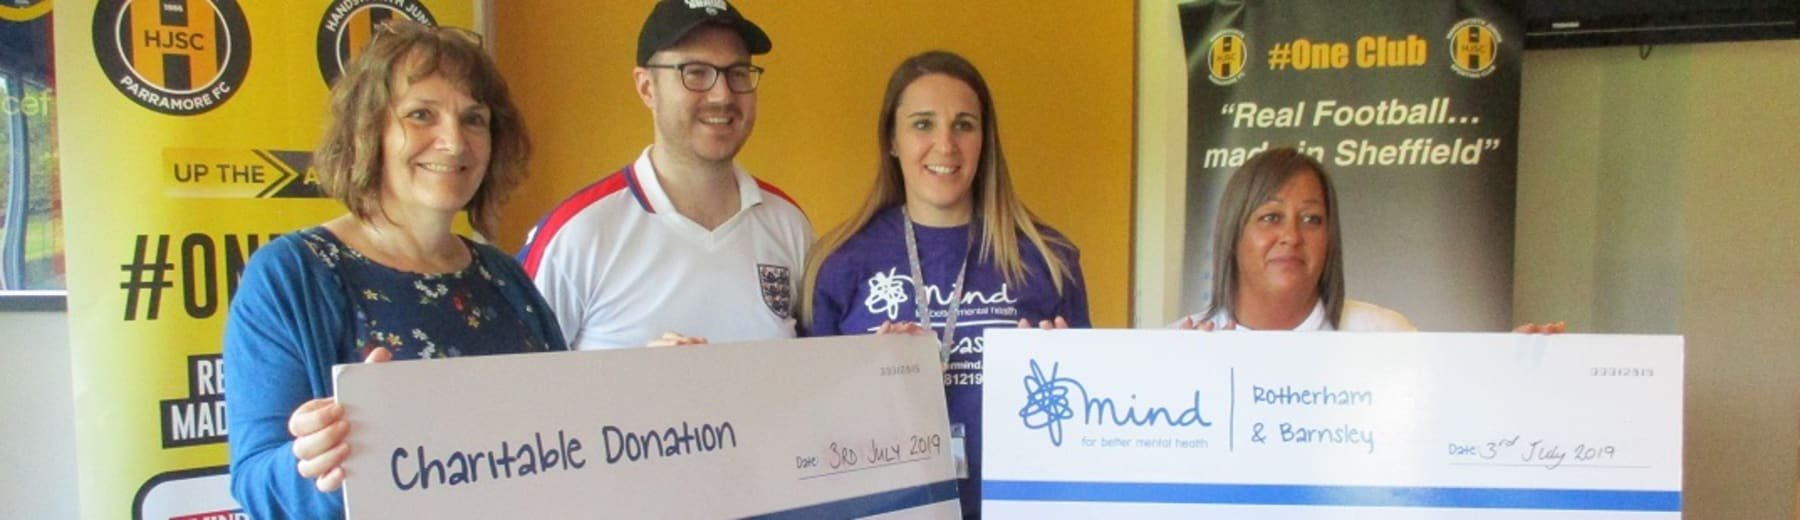 Radio Sheffield's Adam Oxley is a fundraising hero!